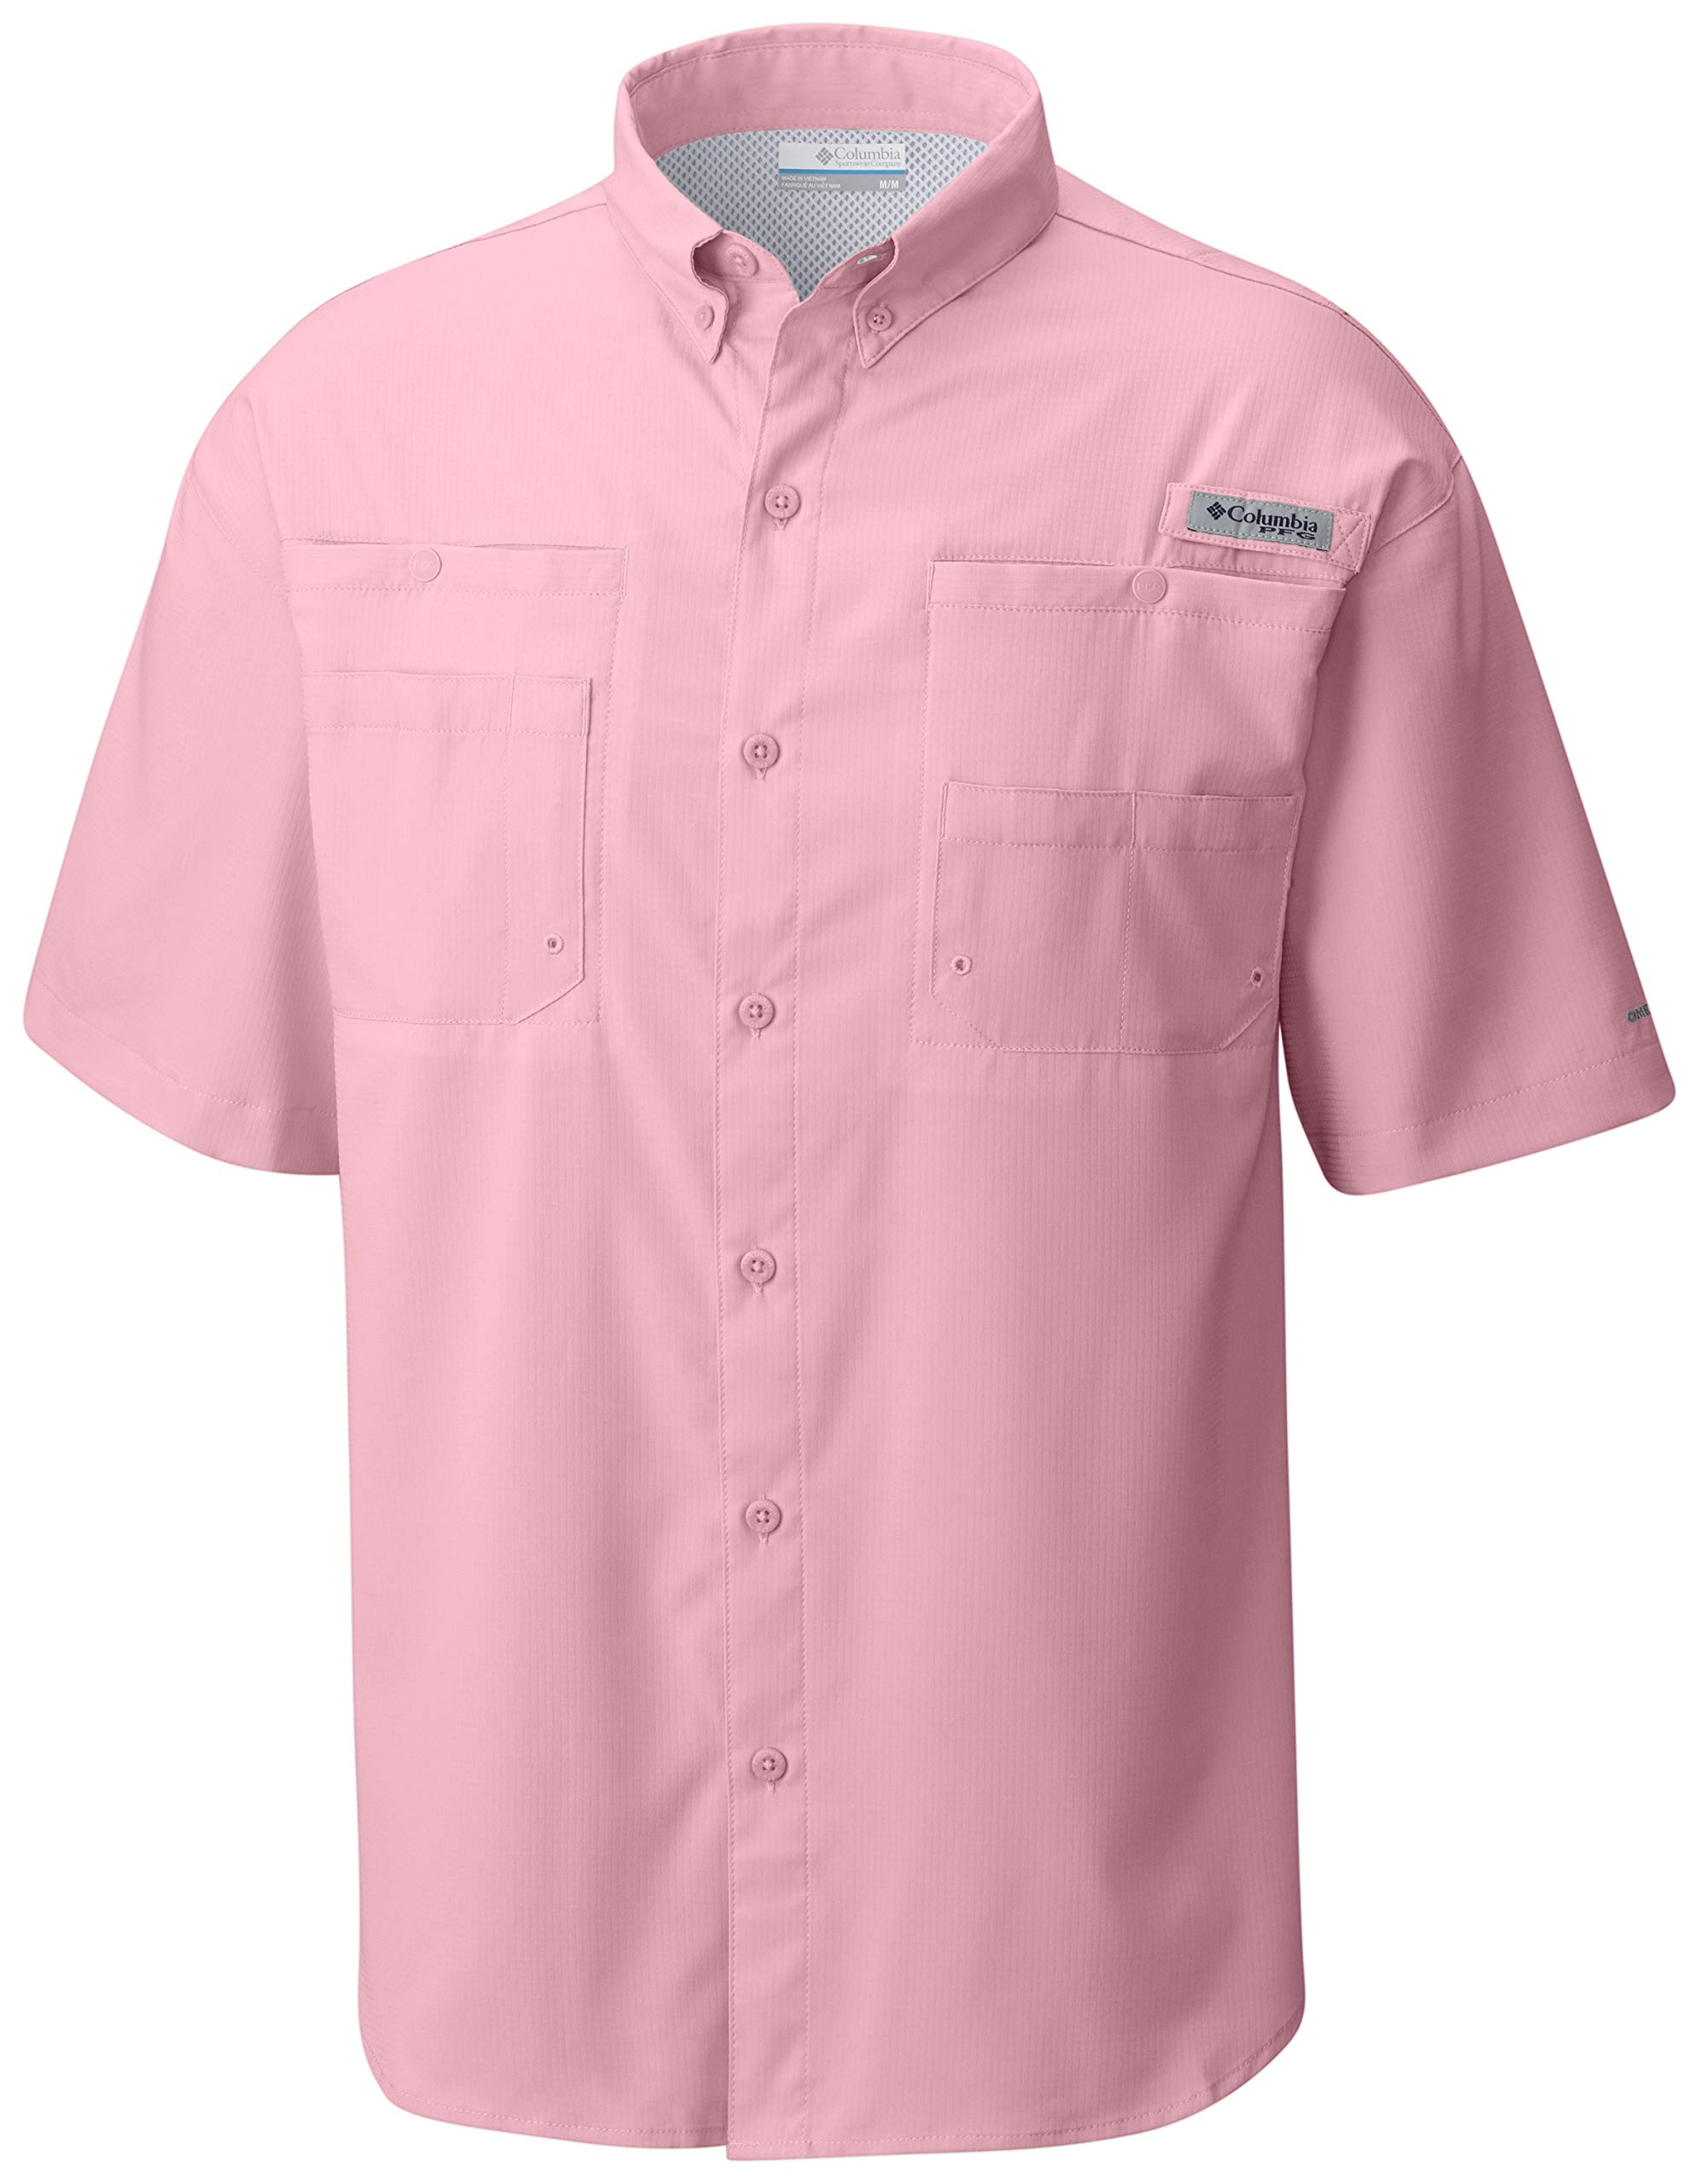 Columbia Men's Tamiami II Short Sleeve Fishing Shirt, Cupid, X-Small by Columbia (Image #1)